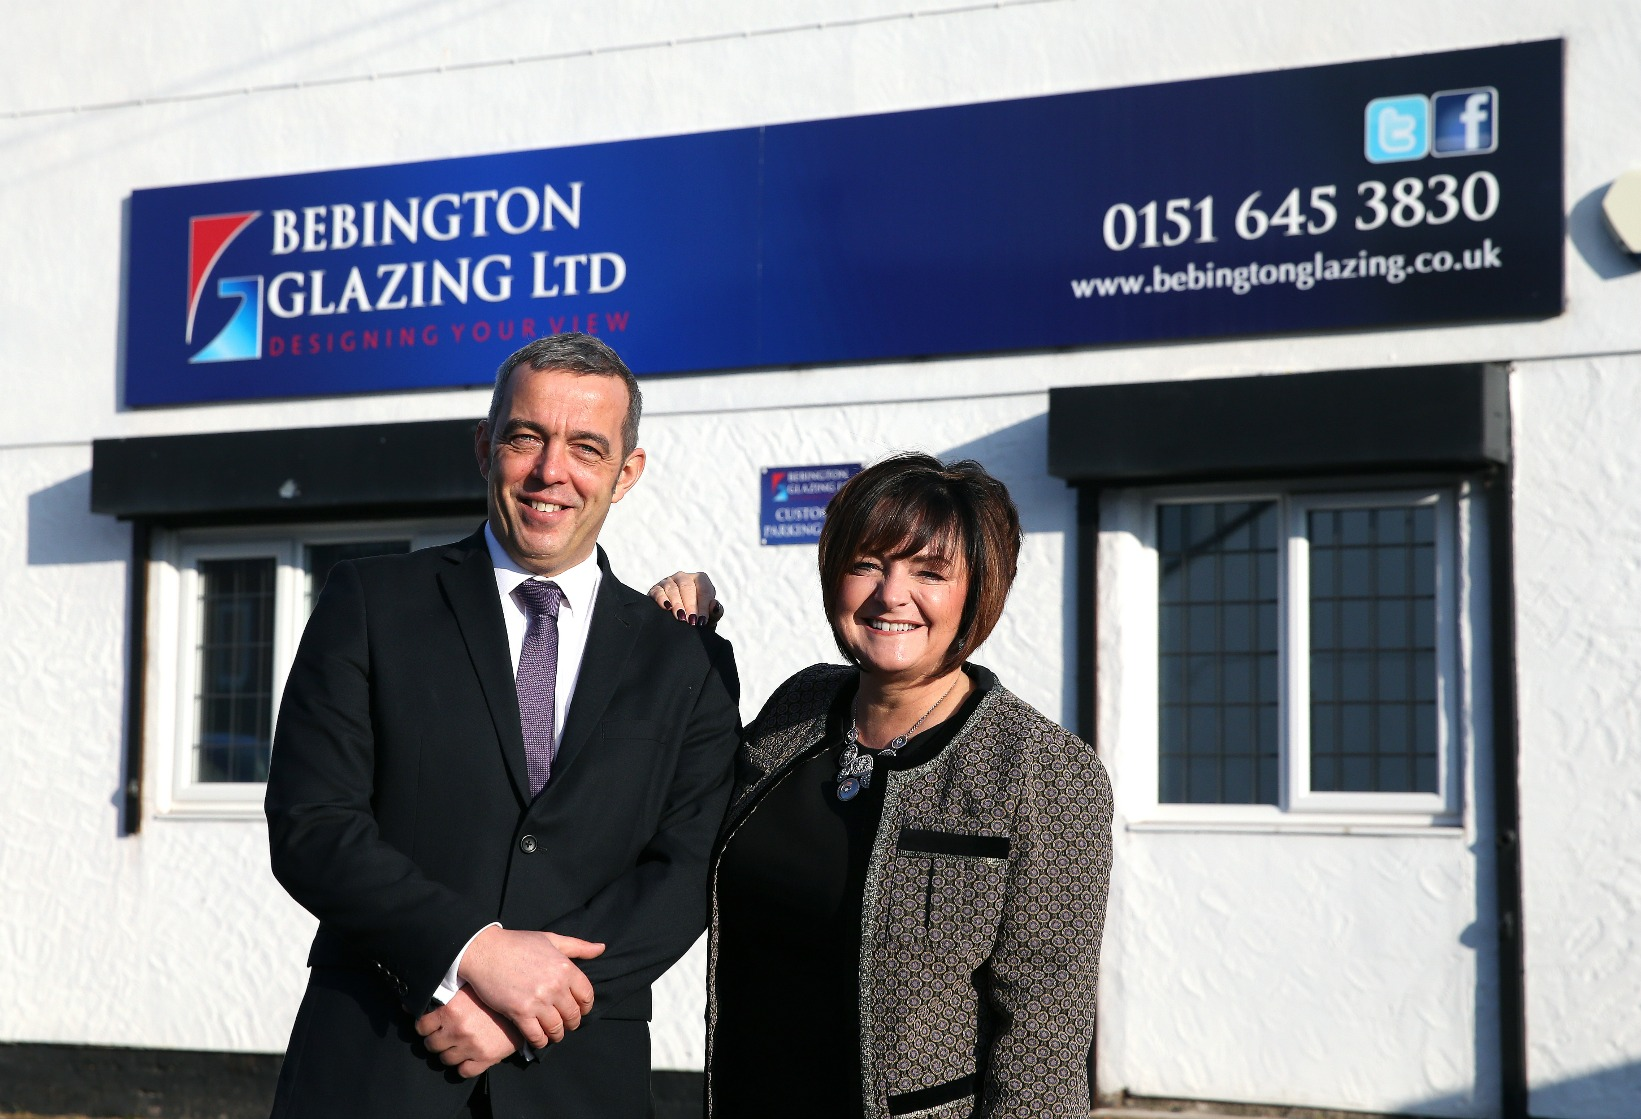 Bebington Glazing Offers 'One Stop Home Improvement Shop' as part of Collaboration with leading UK Blinds Manufacturer